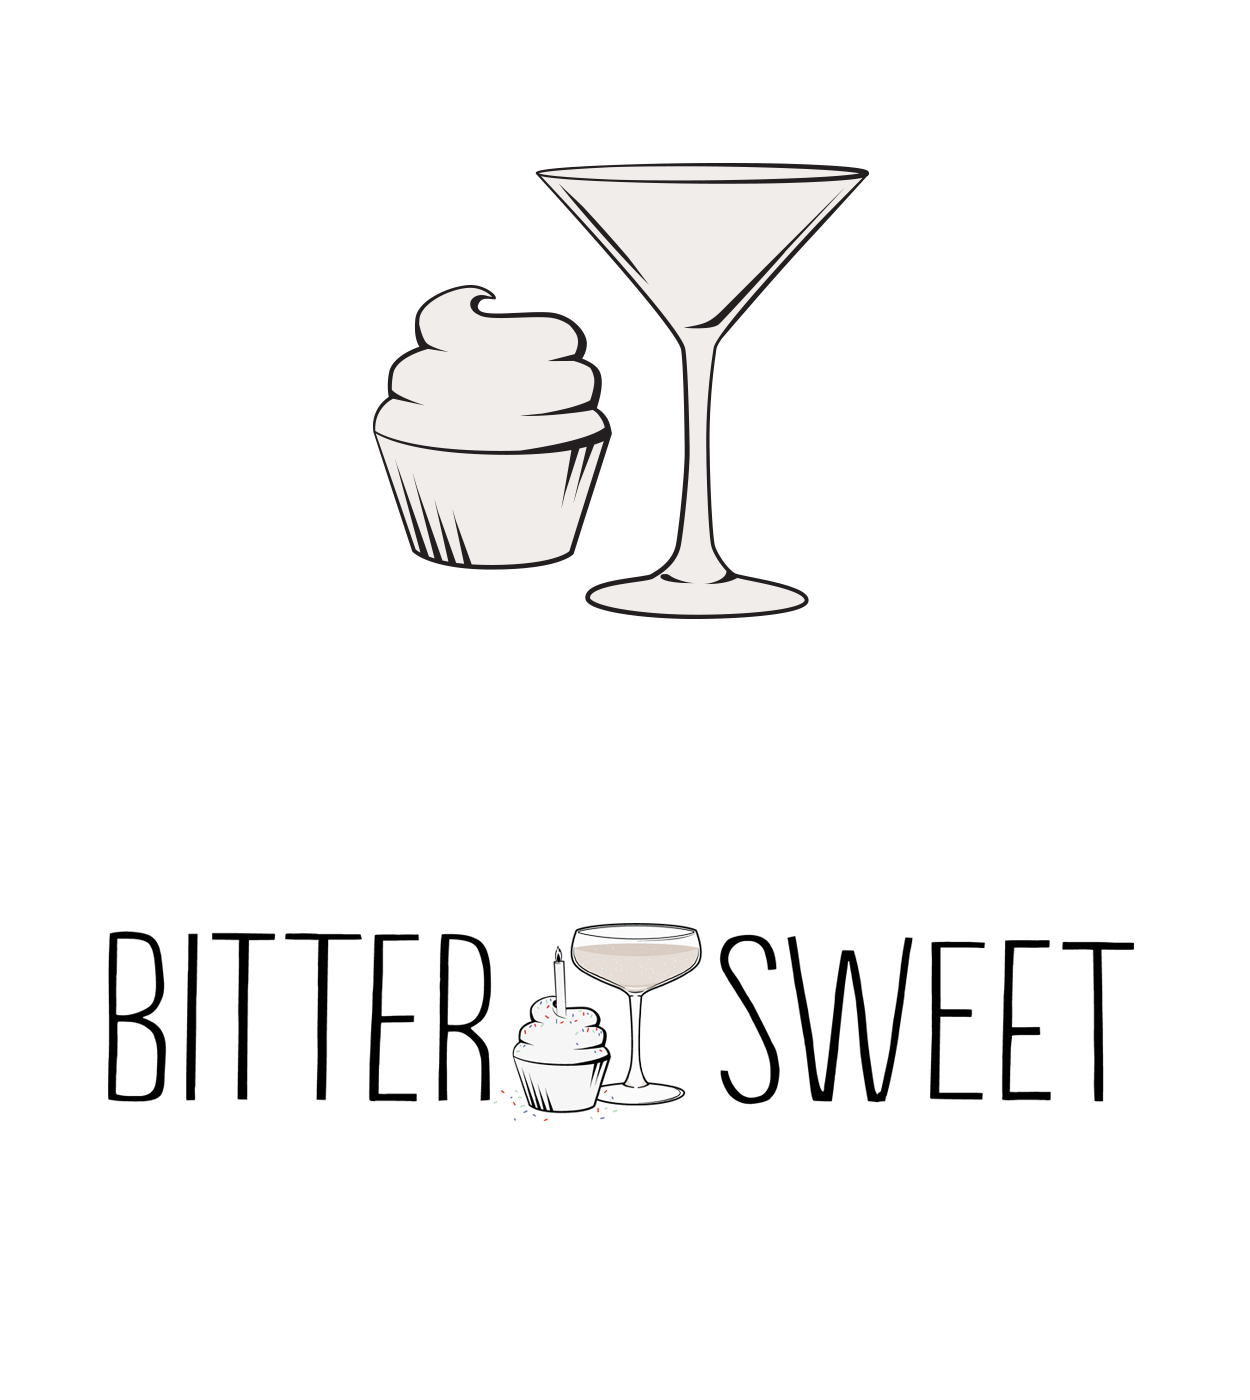 Branding Details - The cupcake and martini glass were part of the original logo concepts, and now they are used as accents throughout the brand. The cupcake, itself, plays homage to the roots of the owner, who started off running a successful home-based cupcake bakery.The birthday logo was created to celebrate the 4-year anniversary of the bar. I changed the martini glass out for a celebratory glass of champagne.